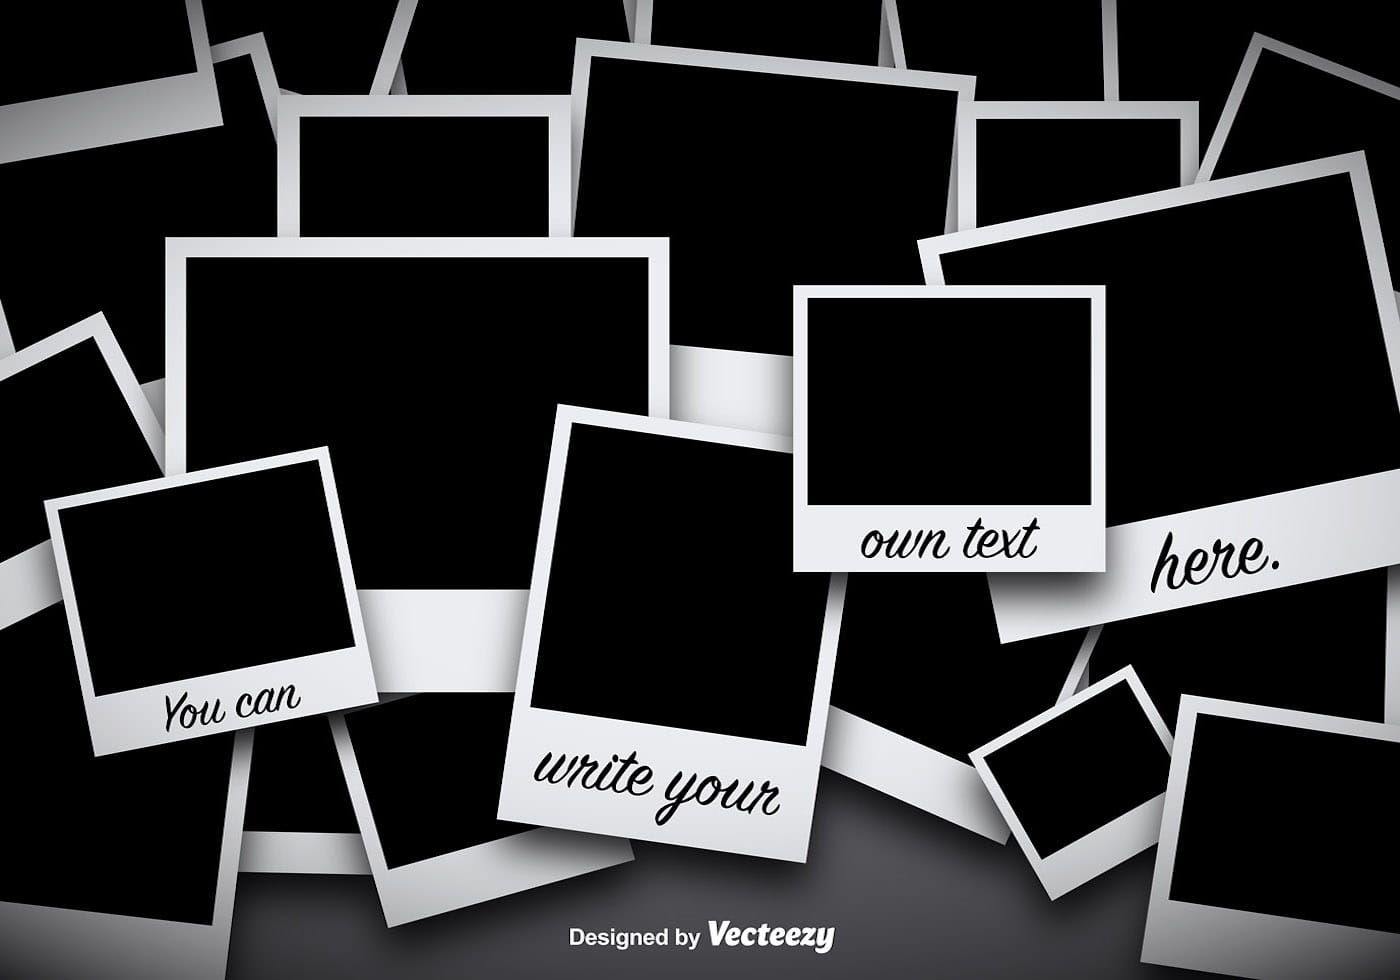 008 Impressive Free Photo Collage Template Download Picture  Psd PowerpointFull